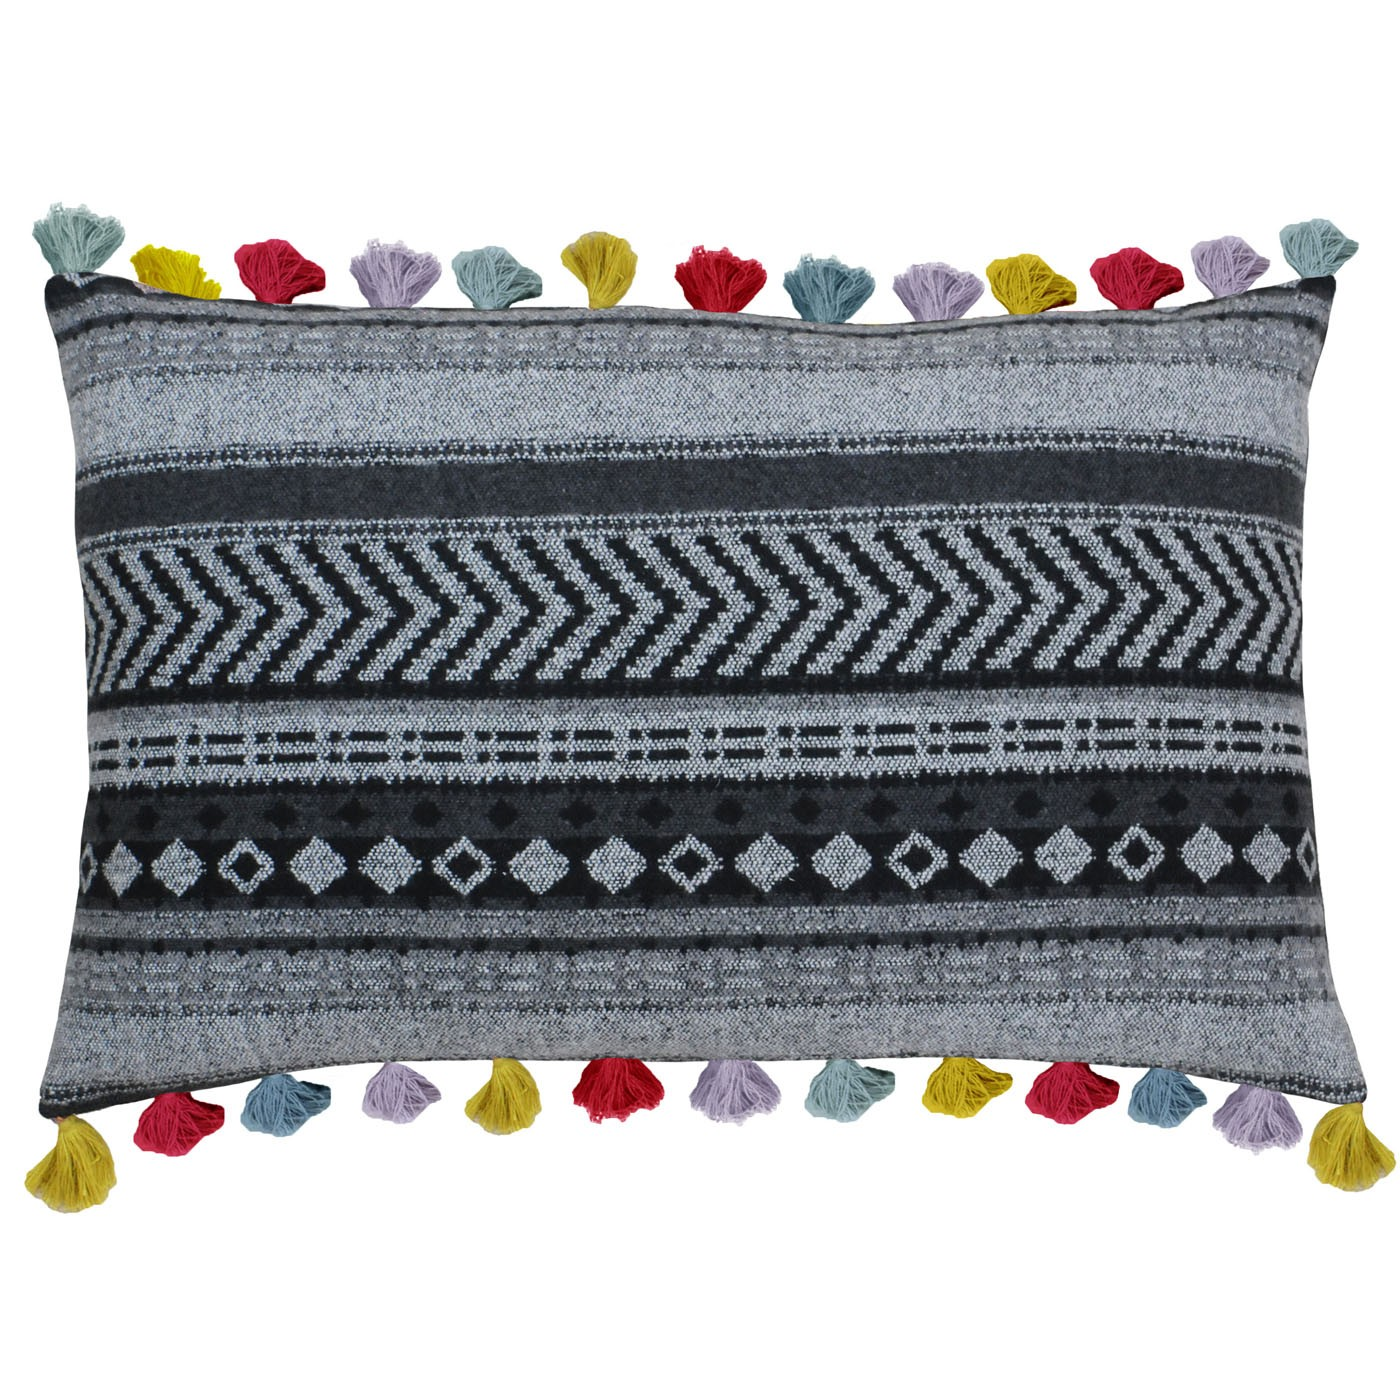 The Home Furnishings Company Peru Tasselled Cushion 40x60cms including inner pad